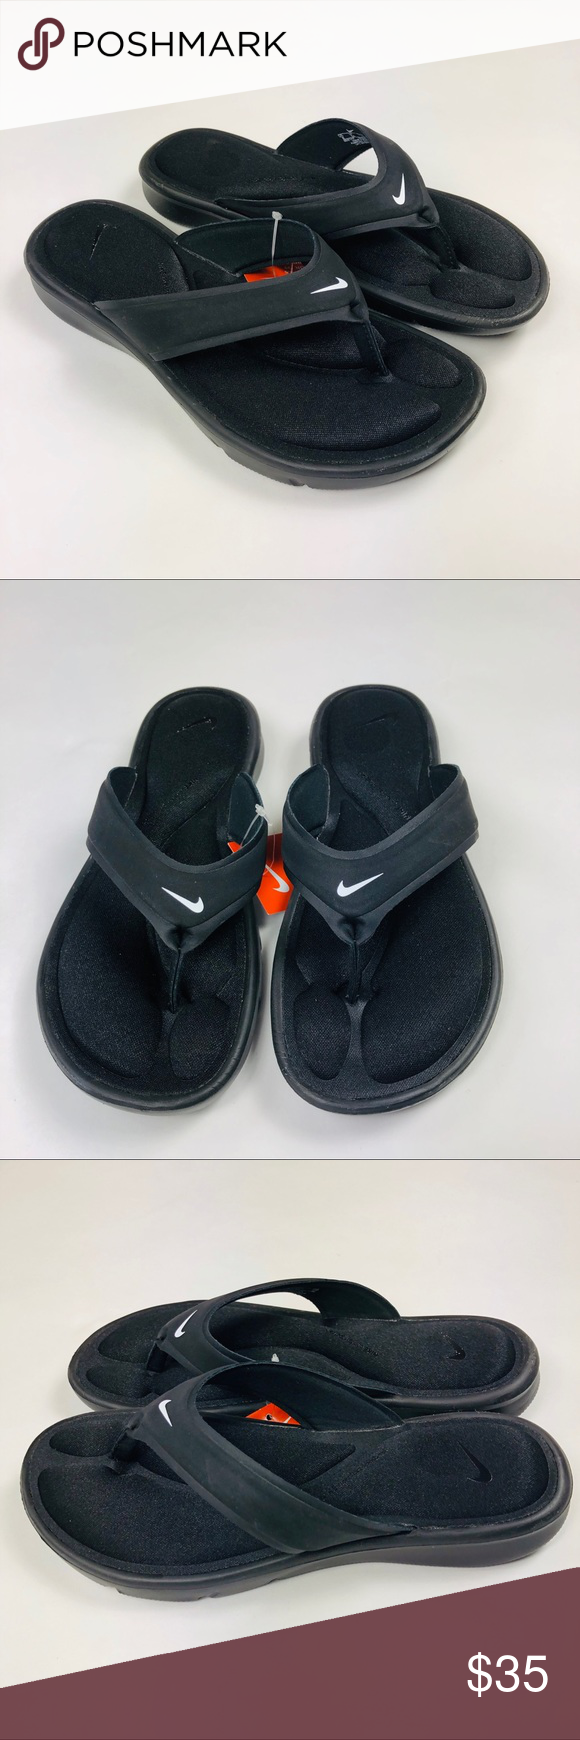 85129aba576a Nike Ultra Comfort Thong Flip Flop Black Womens Nike Womens Ultra Comfort  Thong Flip Flop Cushioned